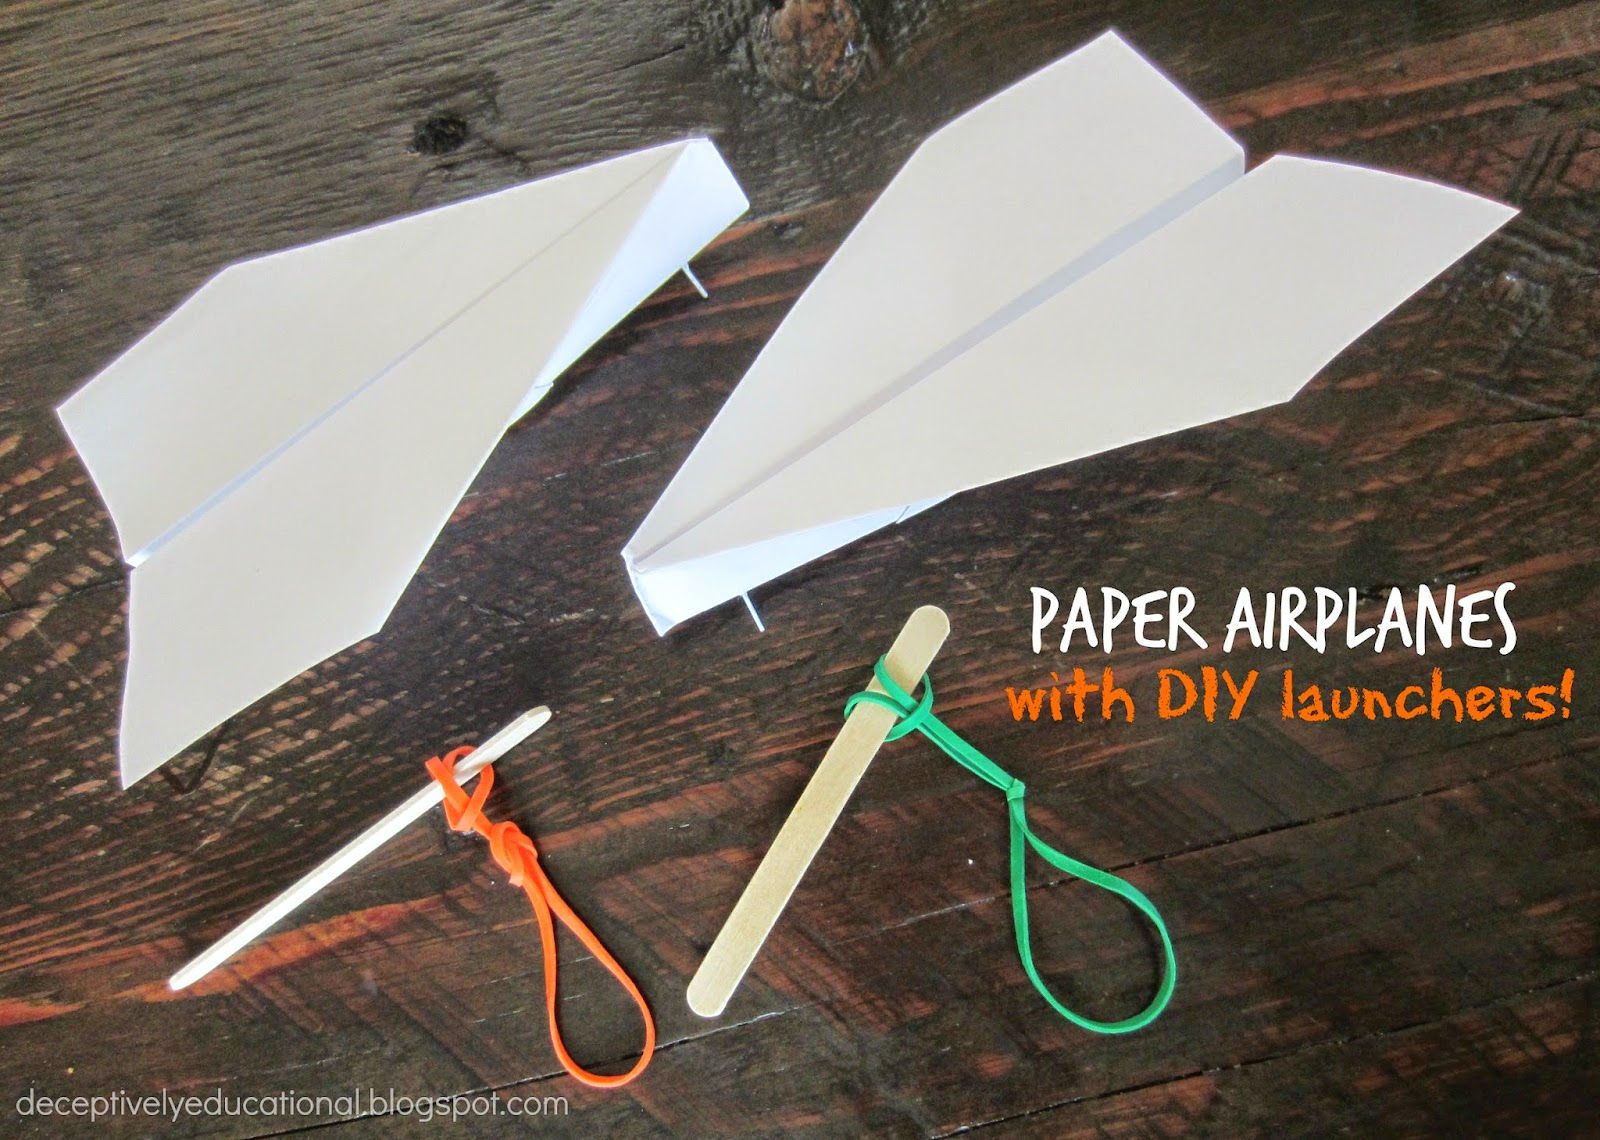 make paper helicopter that flies with How To Make Paper Airplane And Launcher on Bgff3qWmZqk in addition 128712 Using Ratio And Rate as well Make A Paper Helicopter 2 as well How To Install An Adjustable Door Threshold additionally Rust Review Early Access.